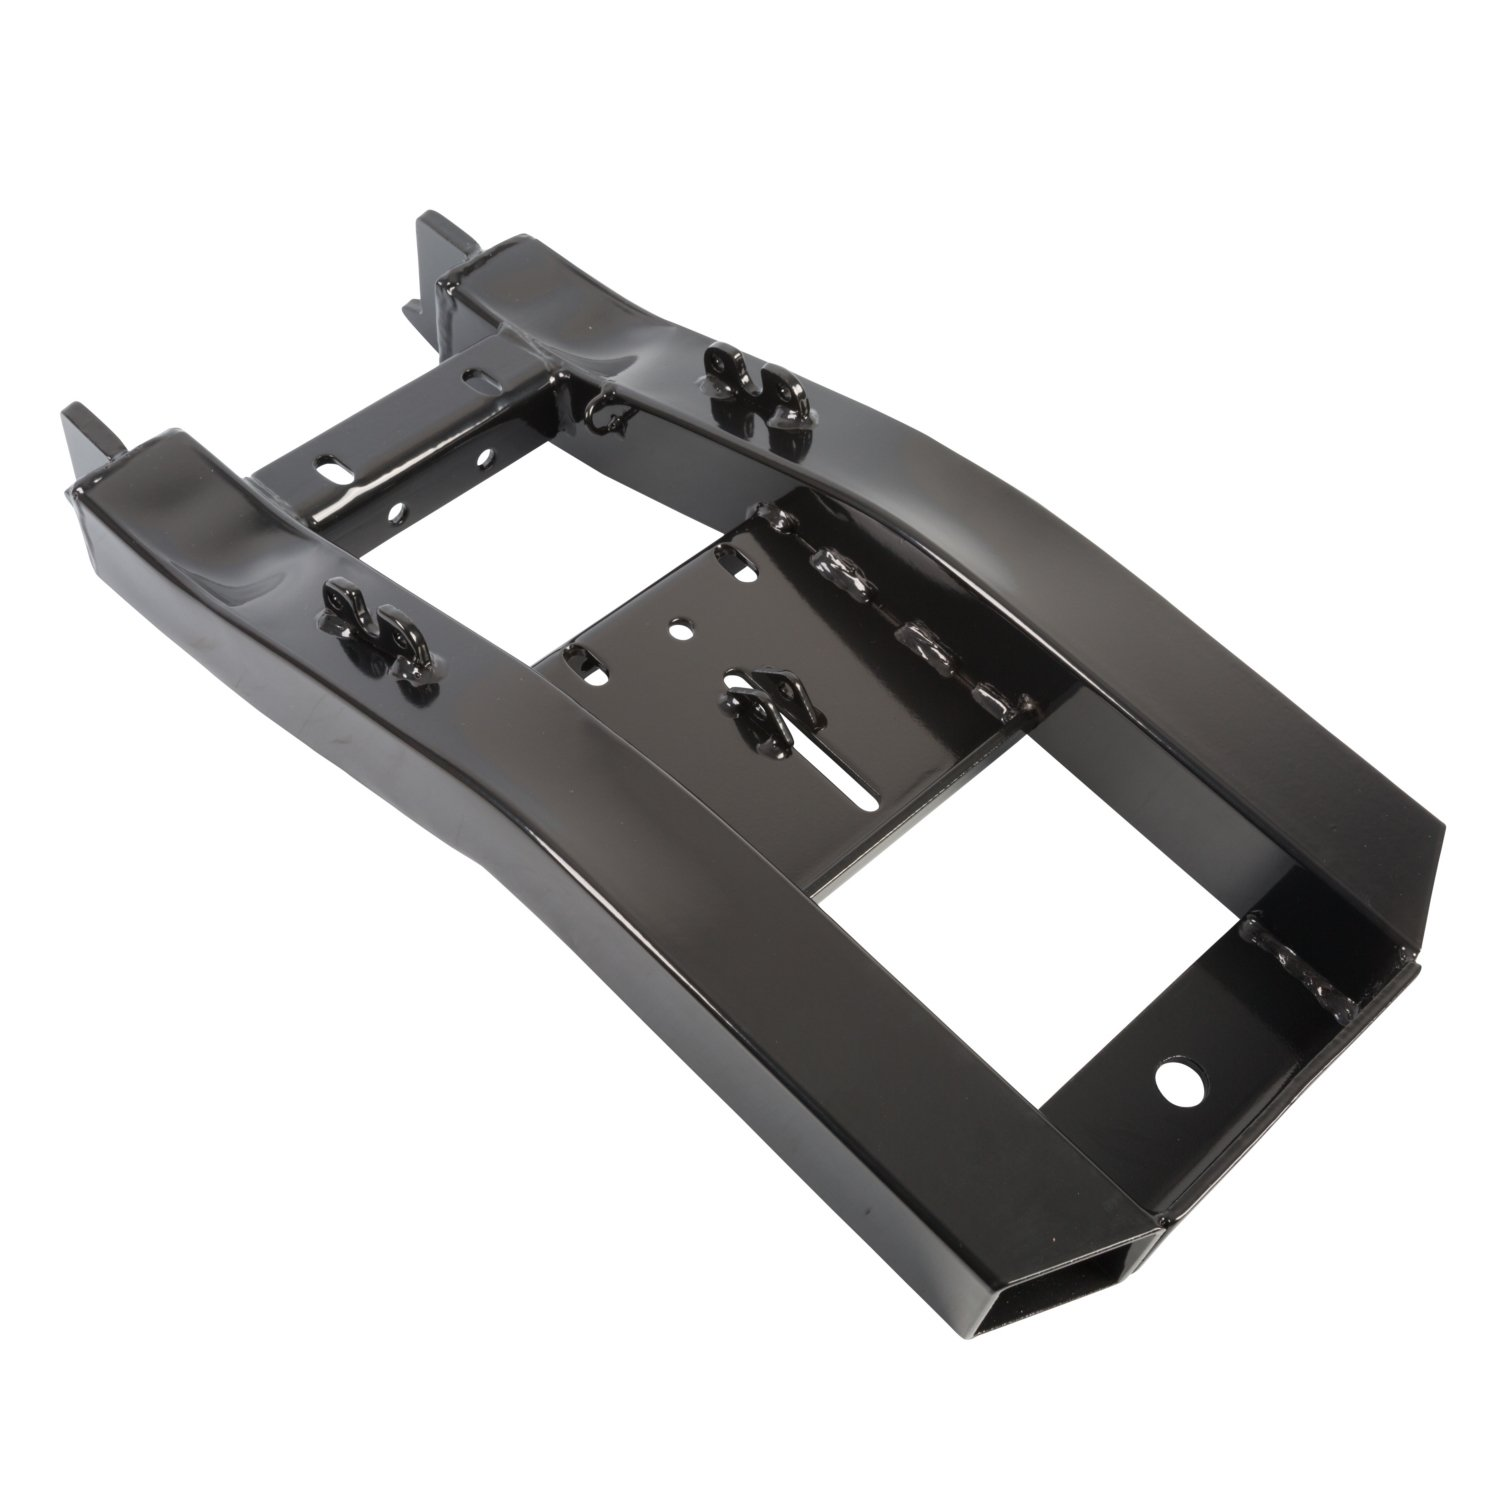 CLICK nGO ATV CNG 2 Plow Sub Frame